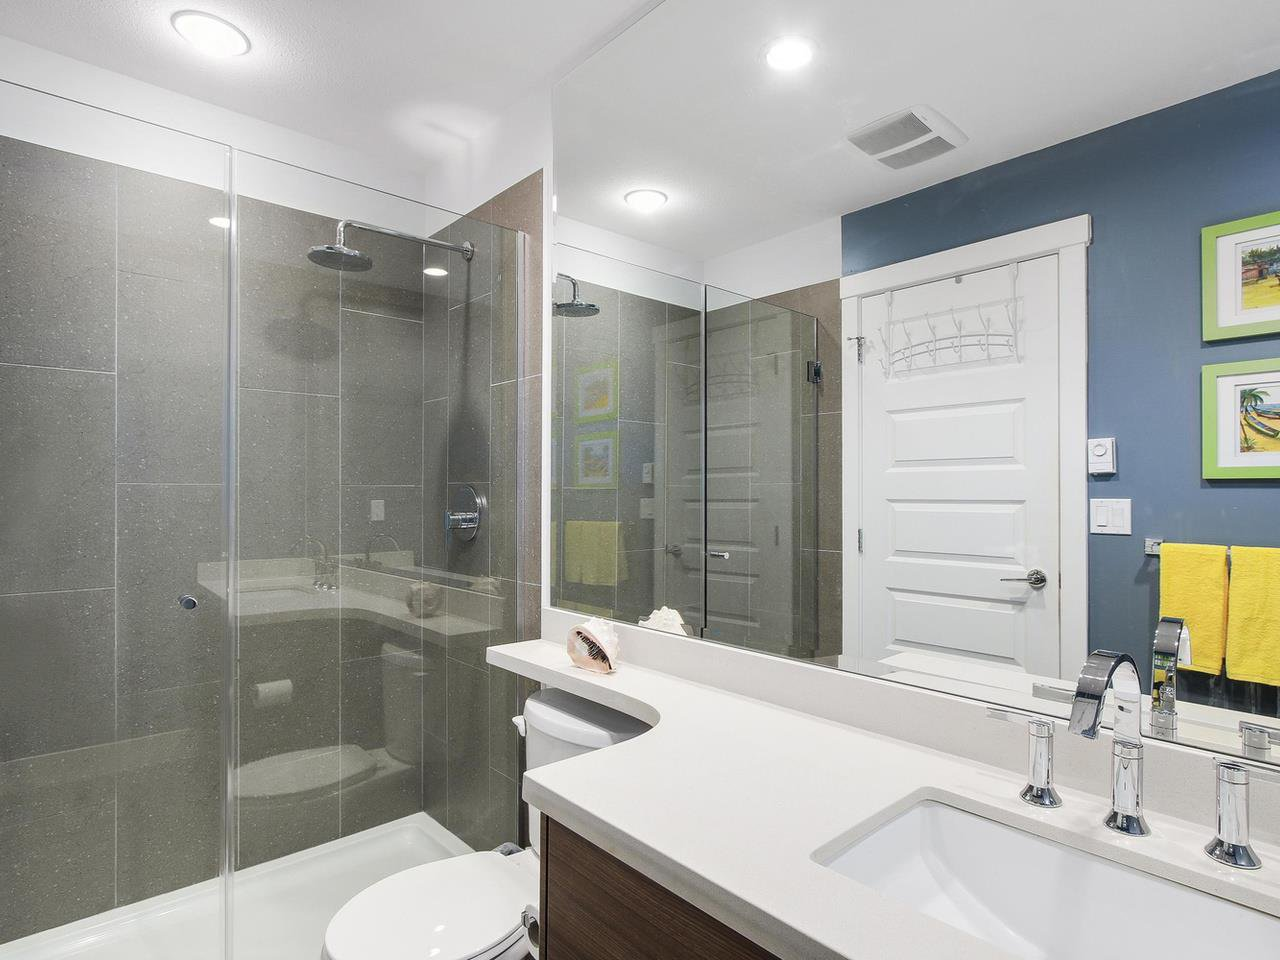 """Photo 12: Photos: 81 14433 60 Avenue in Surrey: Sullivan Station Townhouse for sale in """"Brixton"""" : MLS®# R2152345"""